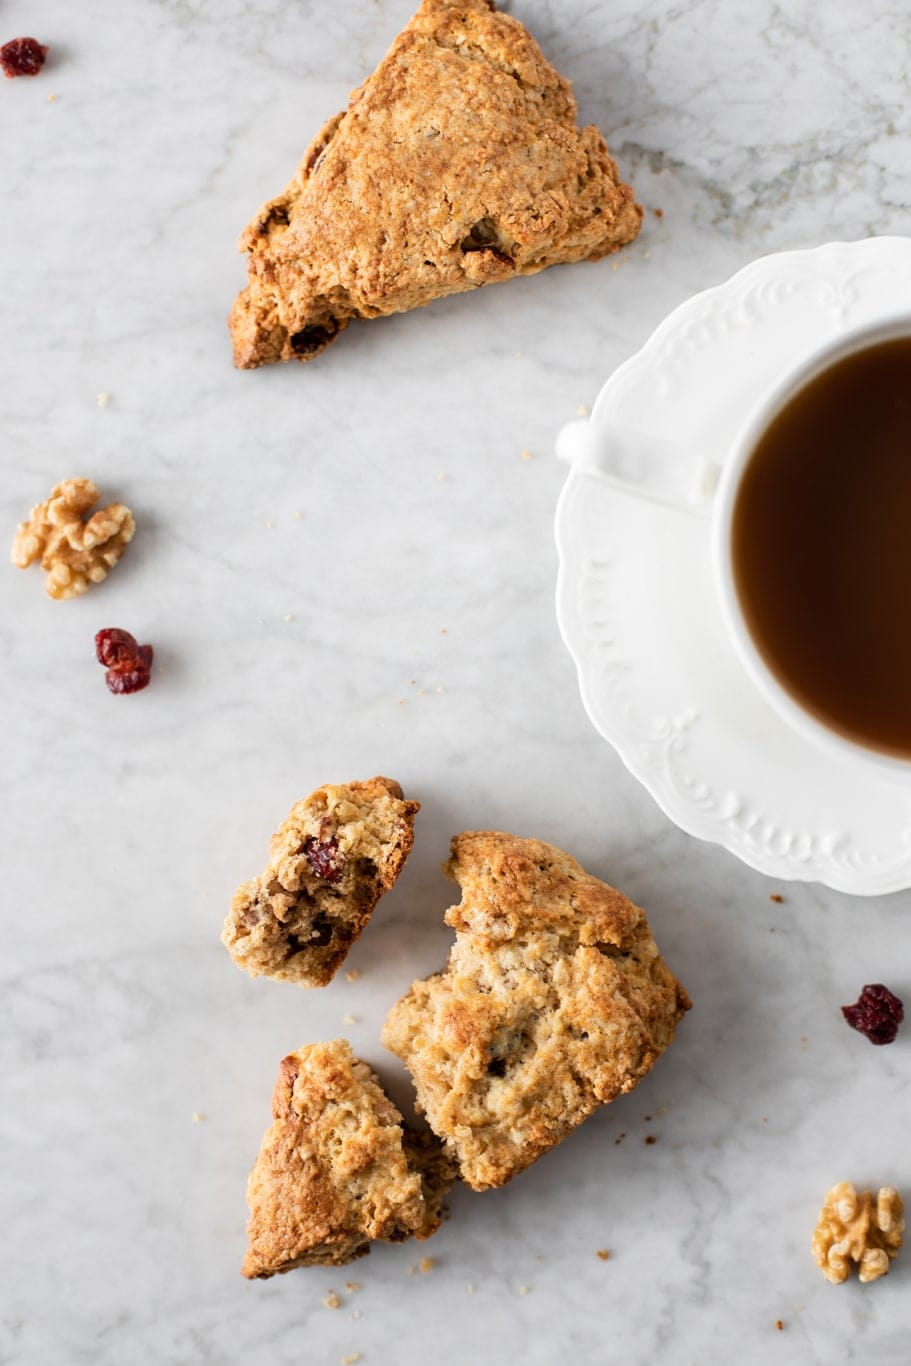 cranberry walnut scones served with coffee